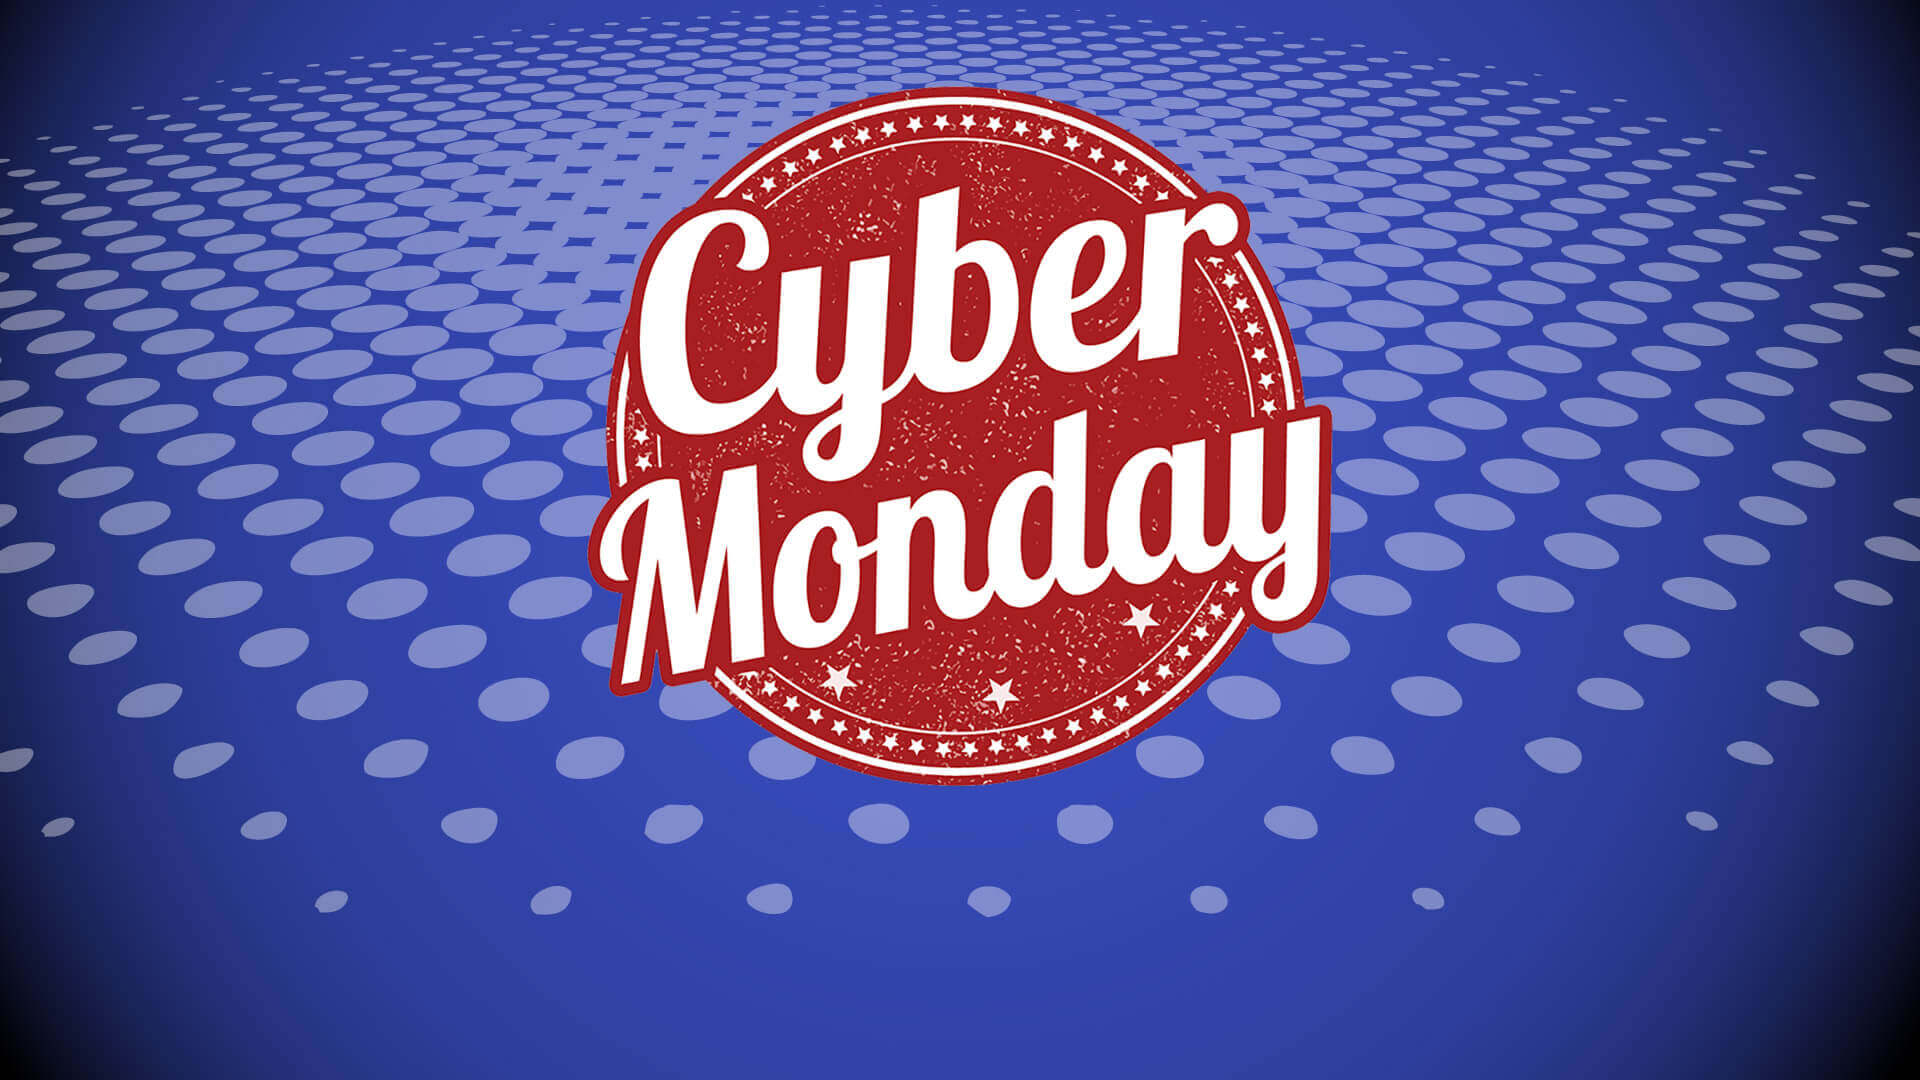 Cyber Monday: 40 best tech deals as selected by our editors